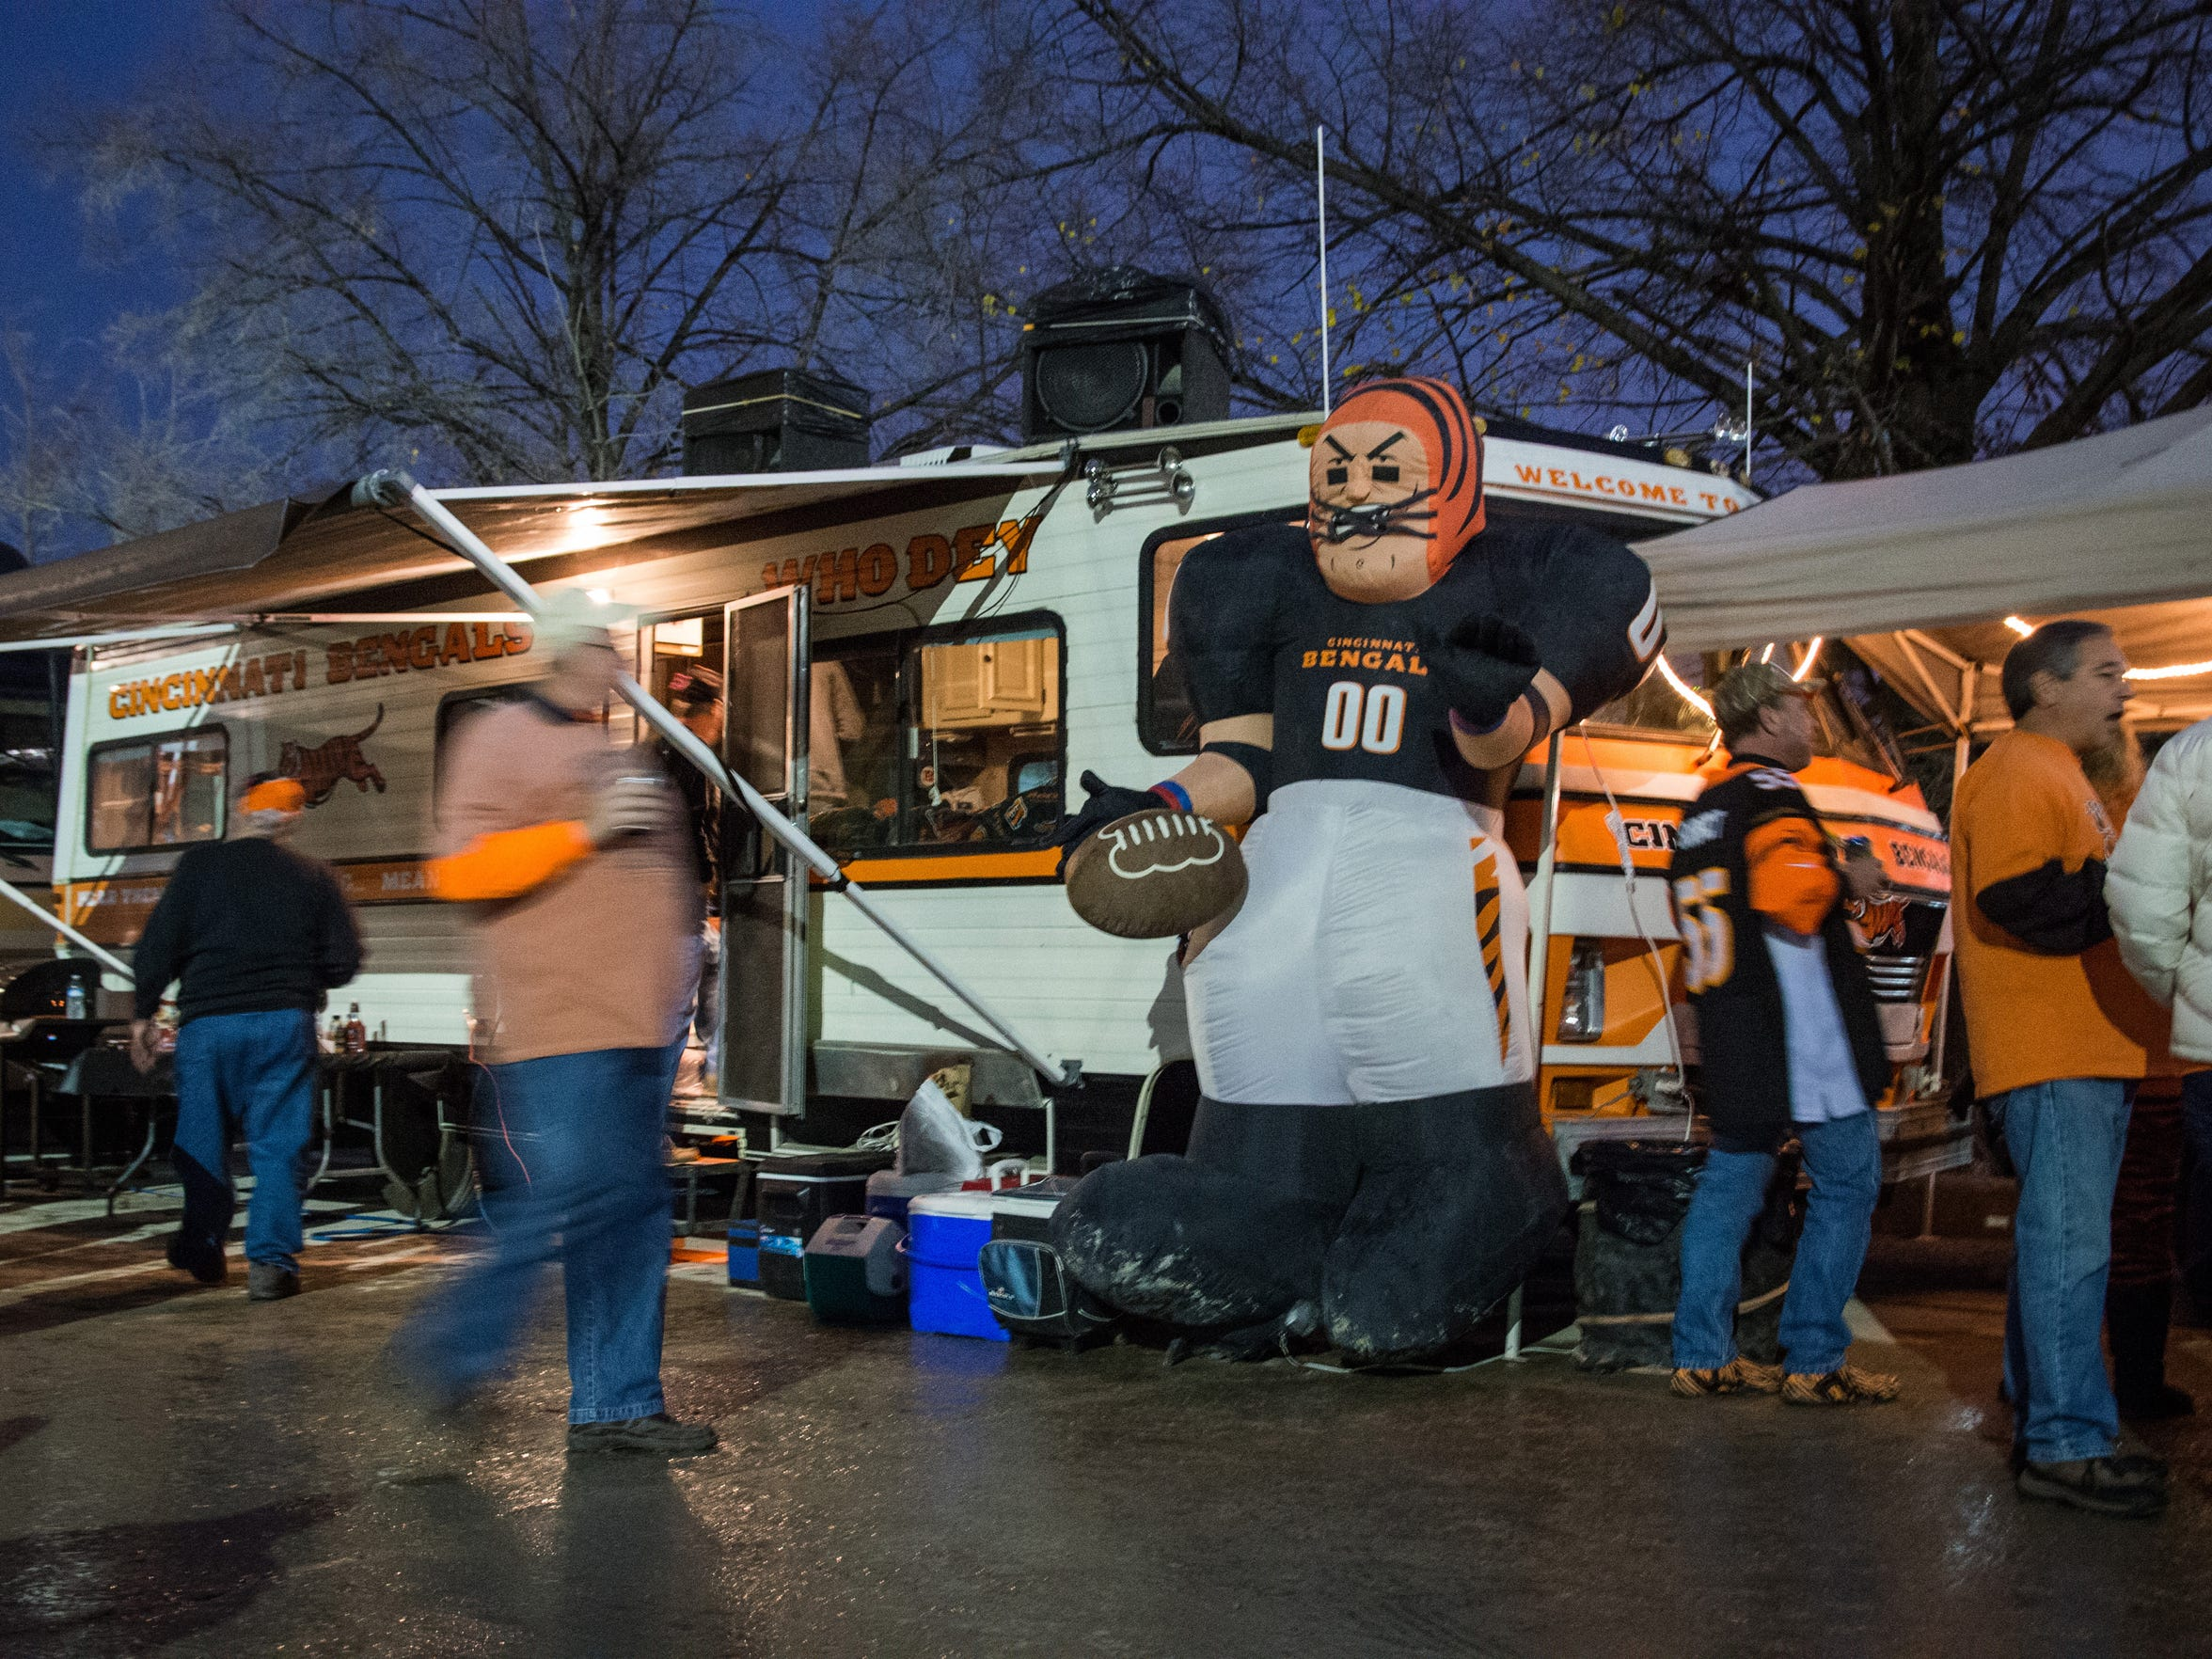 """Bengals fans tailgate in the Hilltop lot along Mehring Way Nov. 16. Fans deck out their tailgating spot in Who Dey and Bengals gear. """"It puts a smile on your face and let's you know you are doing good on the field and fans are taking notice,"""" Bengals defensive lineman Carlos Dunlap said of the Who Dey difference."""